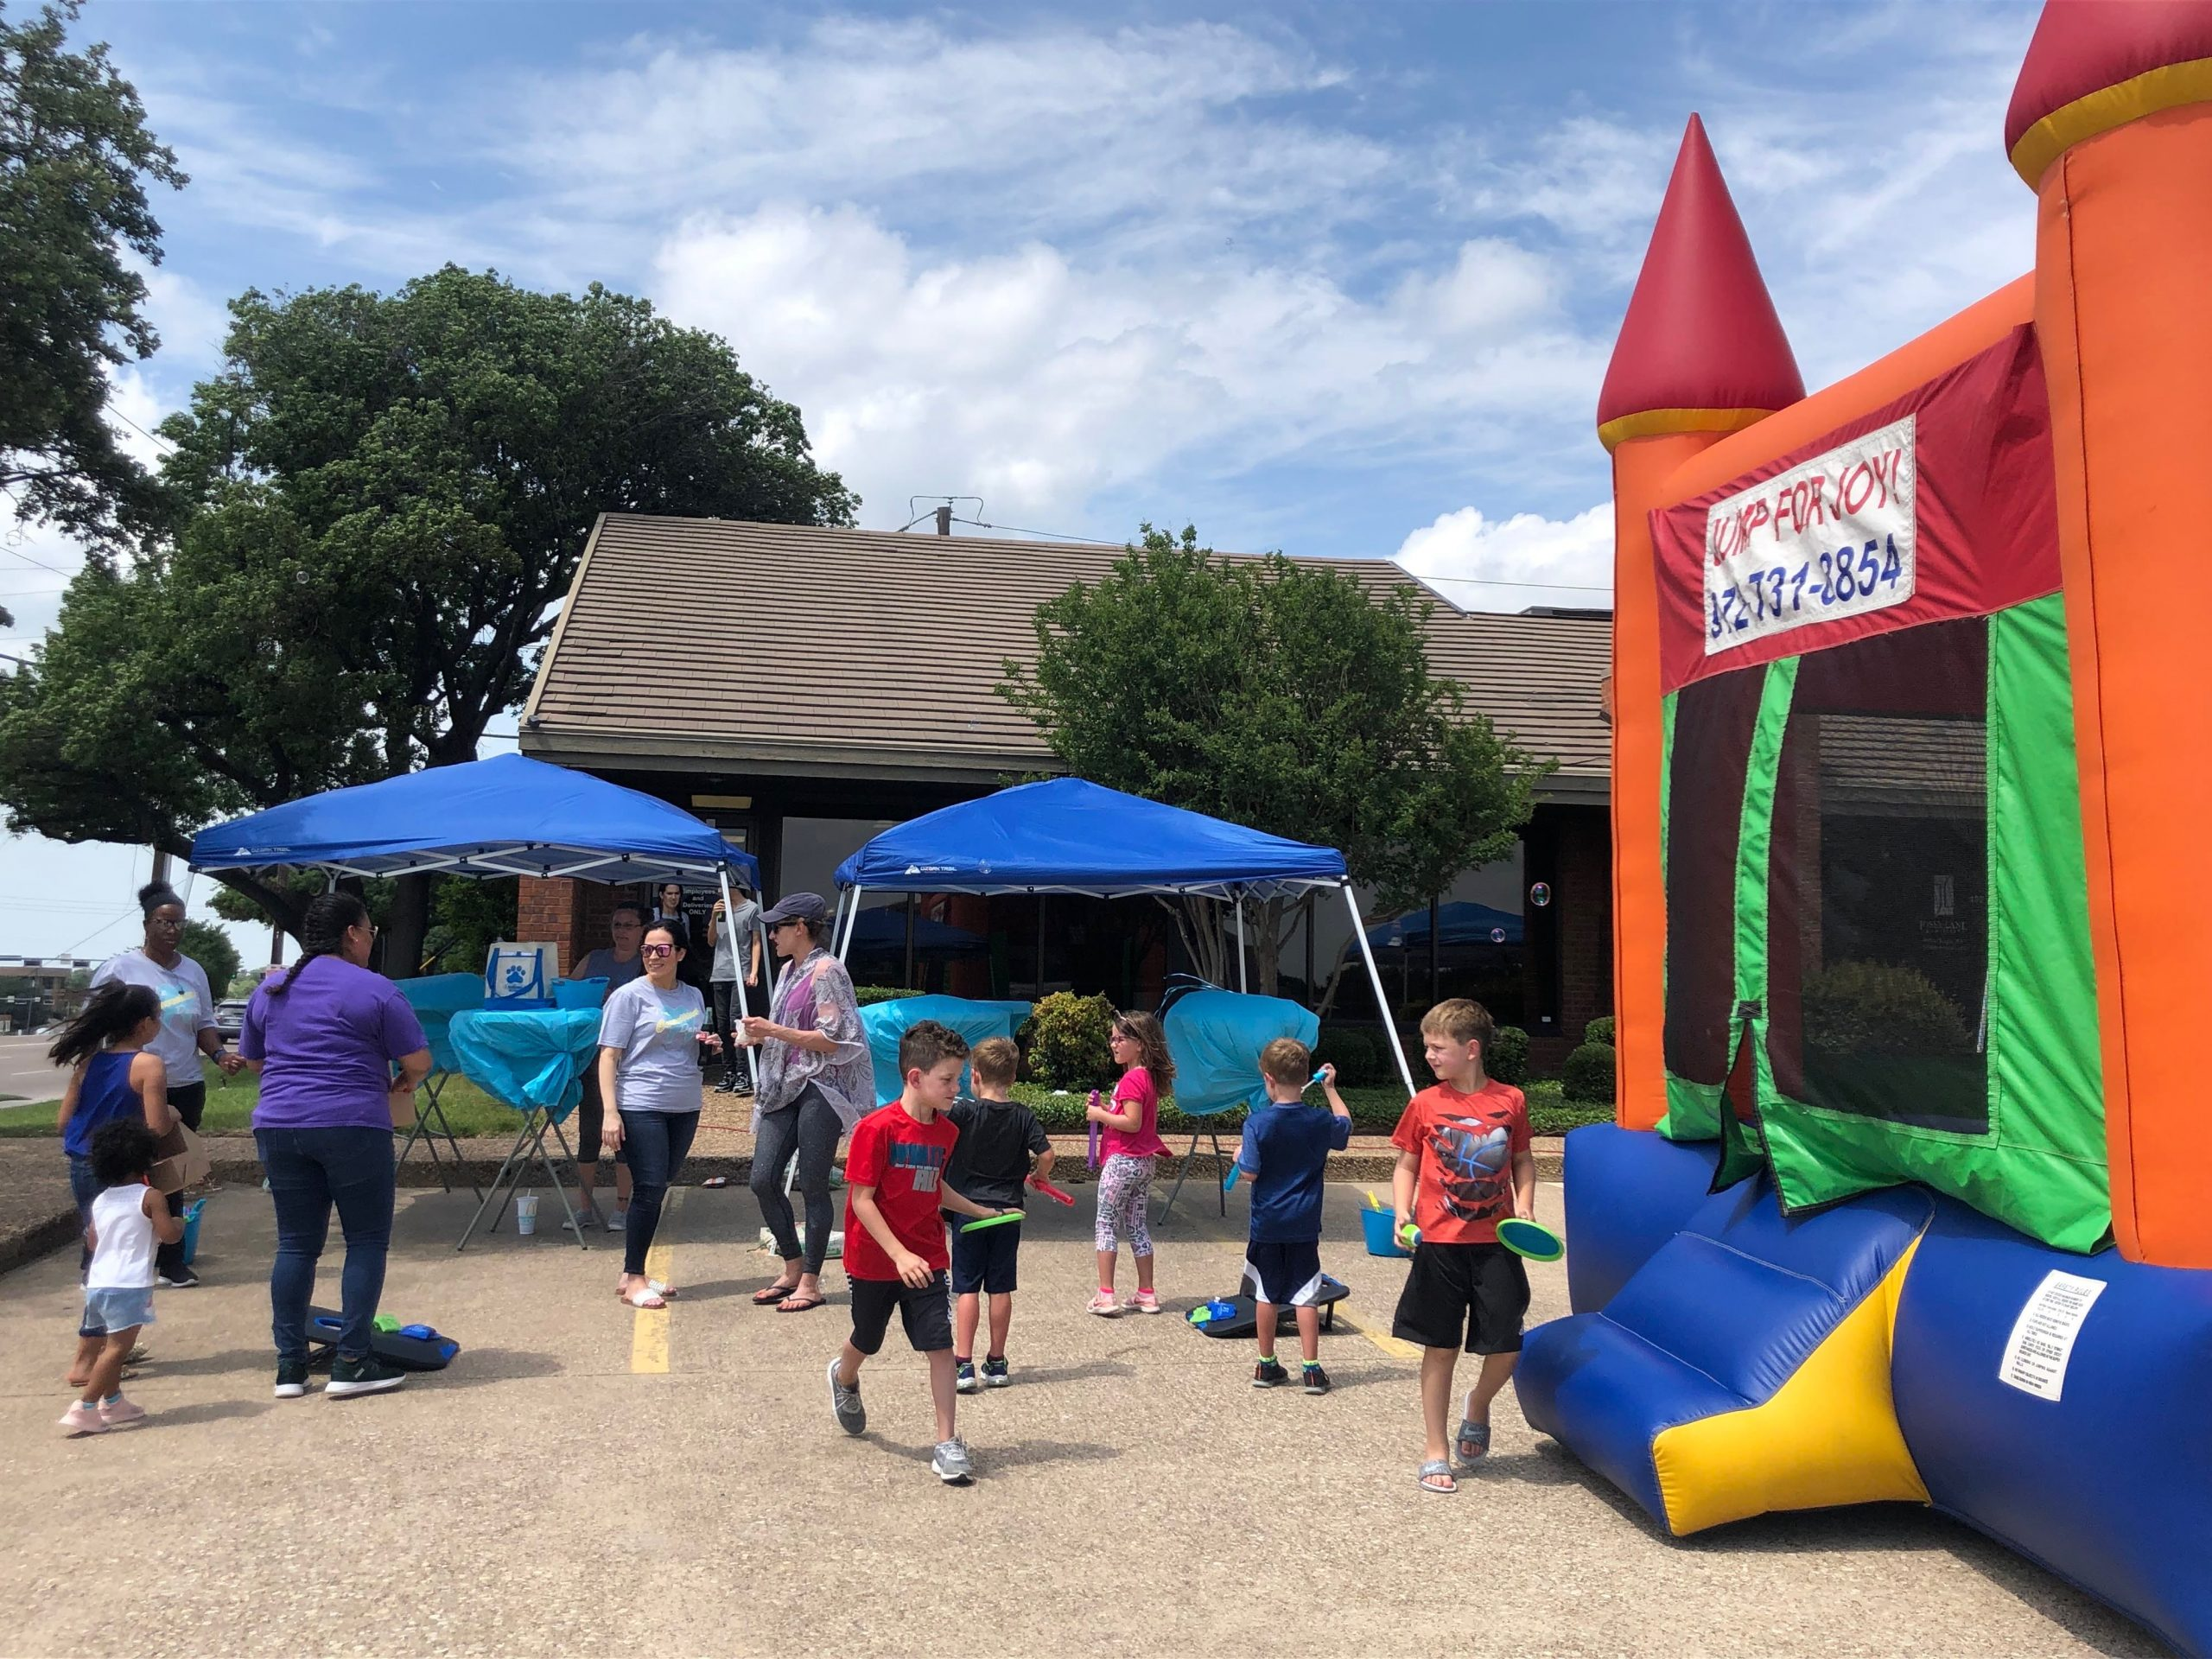 The Carrollton Dentist gets a bounce house, DJ, and food truck for its block party.